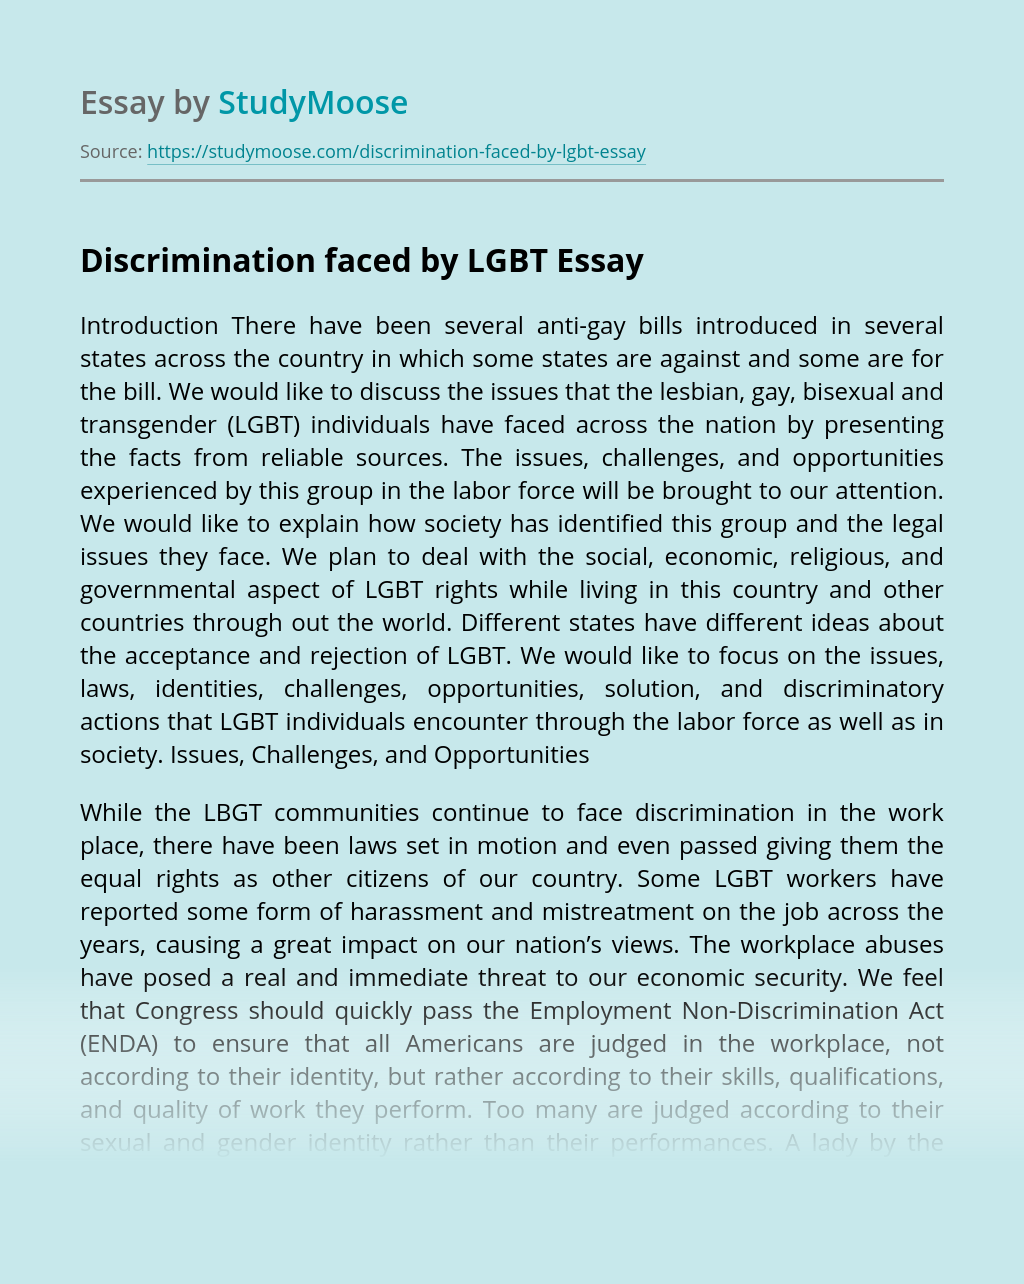 Discrimination faced by LGBT